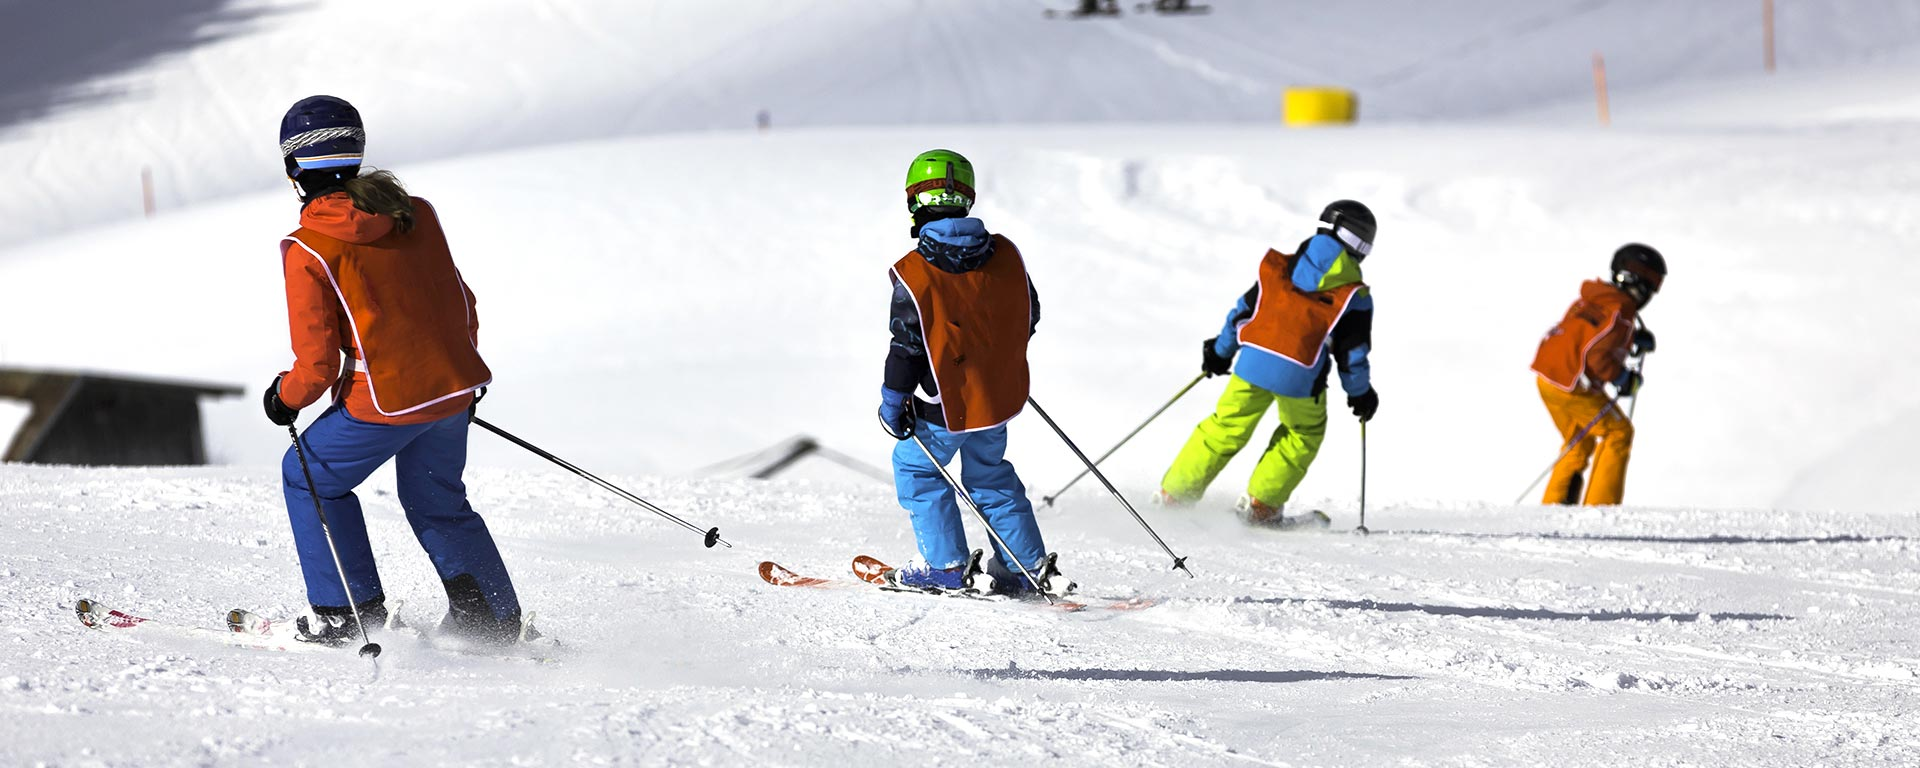 some kids with orange vests during a ski course organised by a ski school